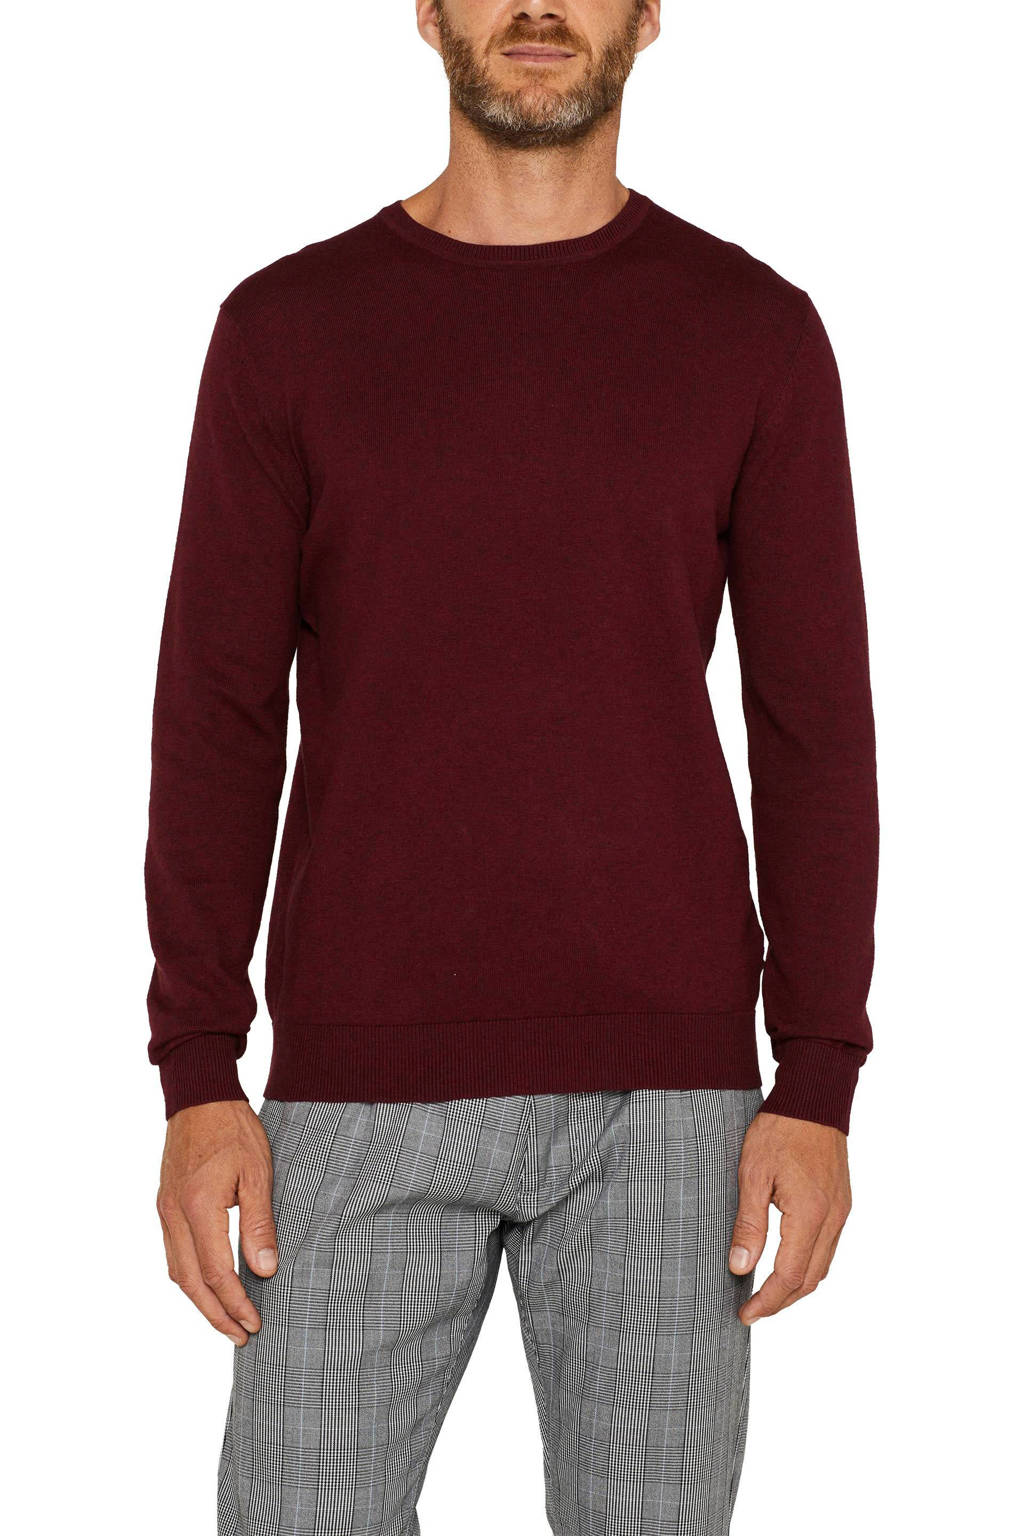 ESPRIT Men Casual trui donkerrood, Donkerrood